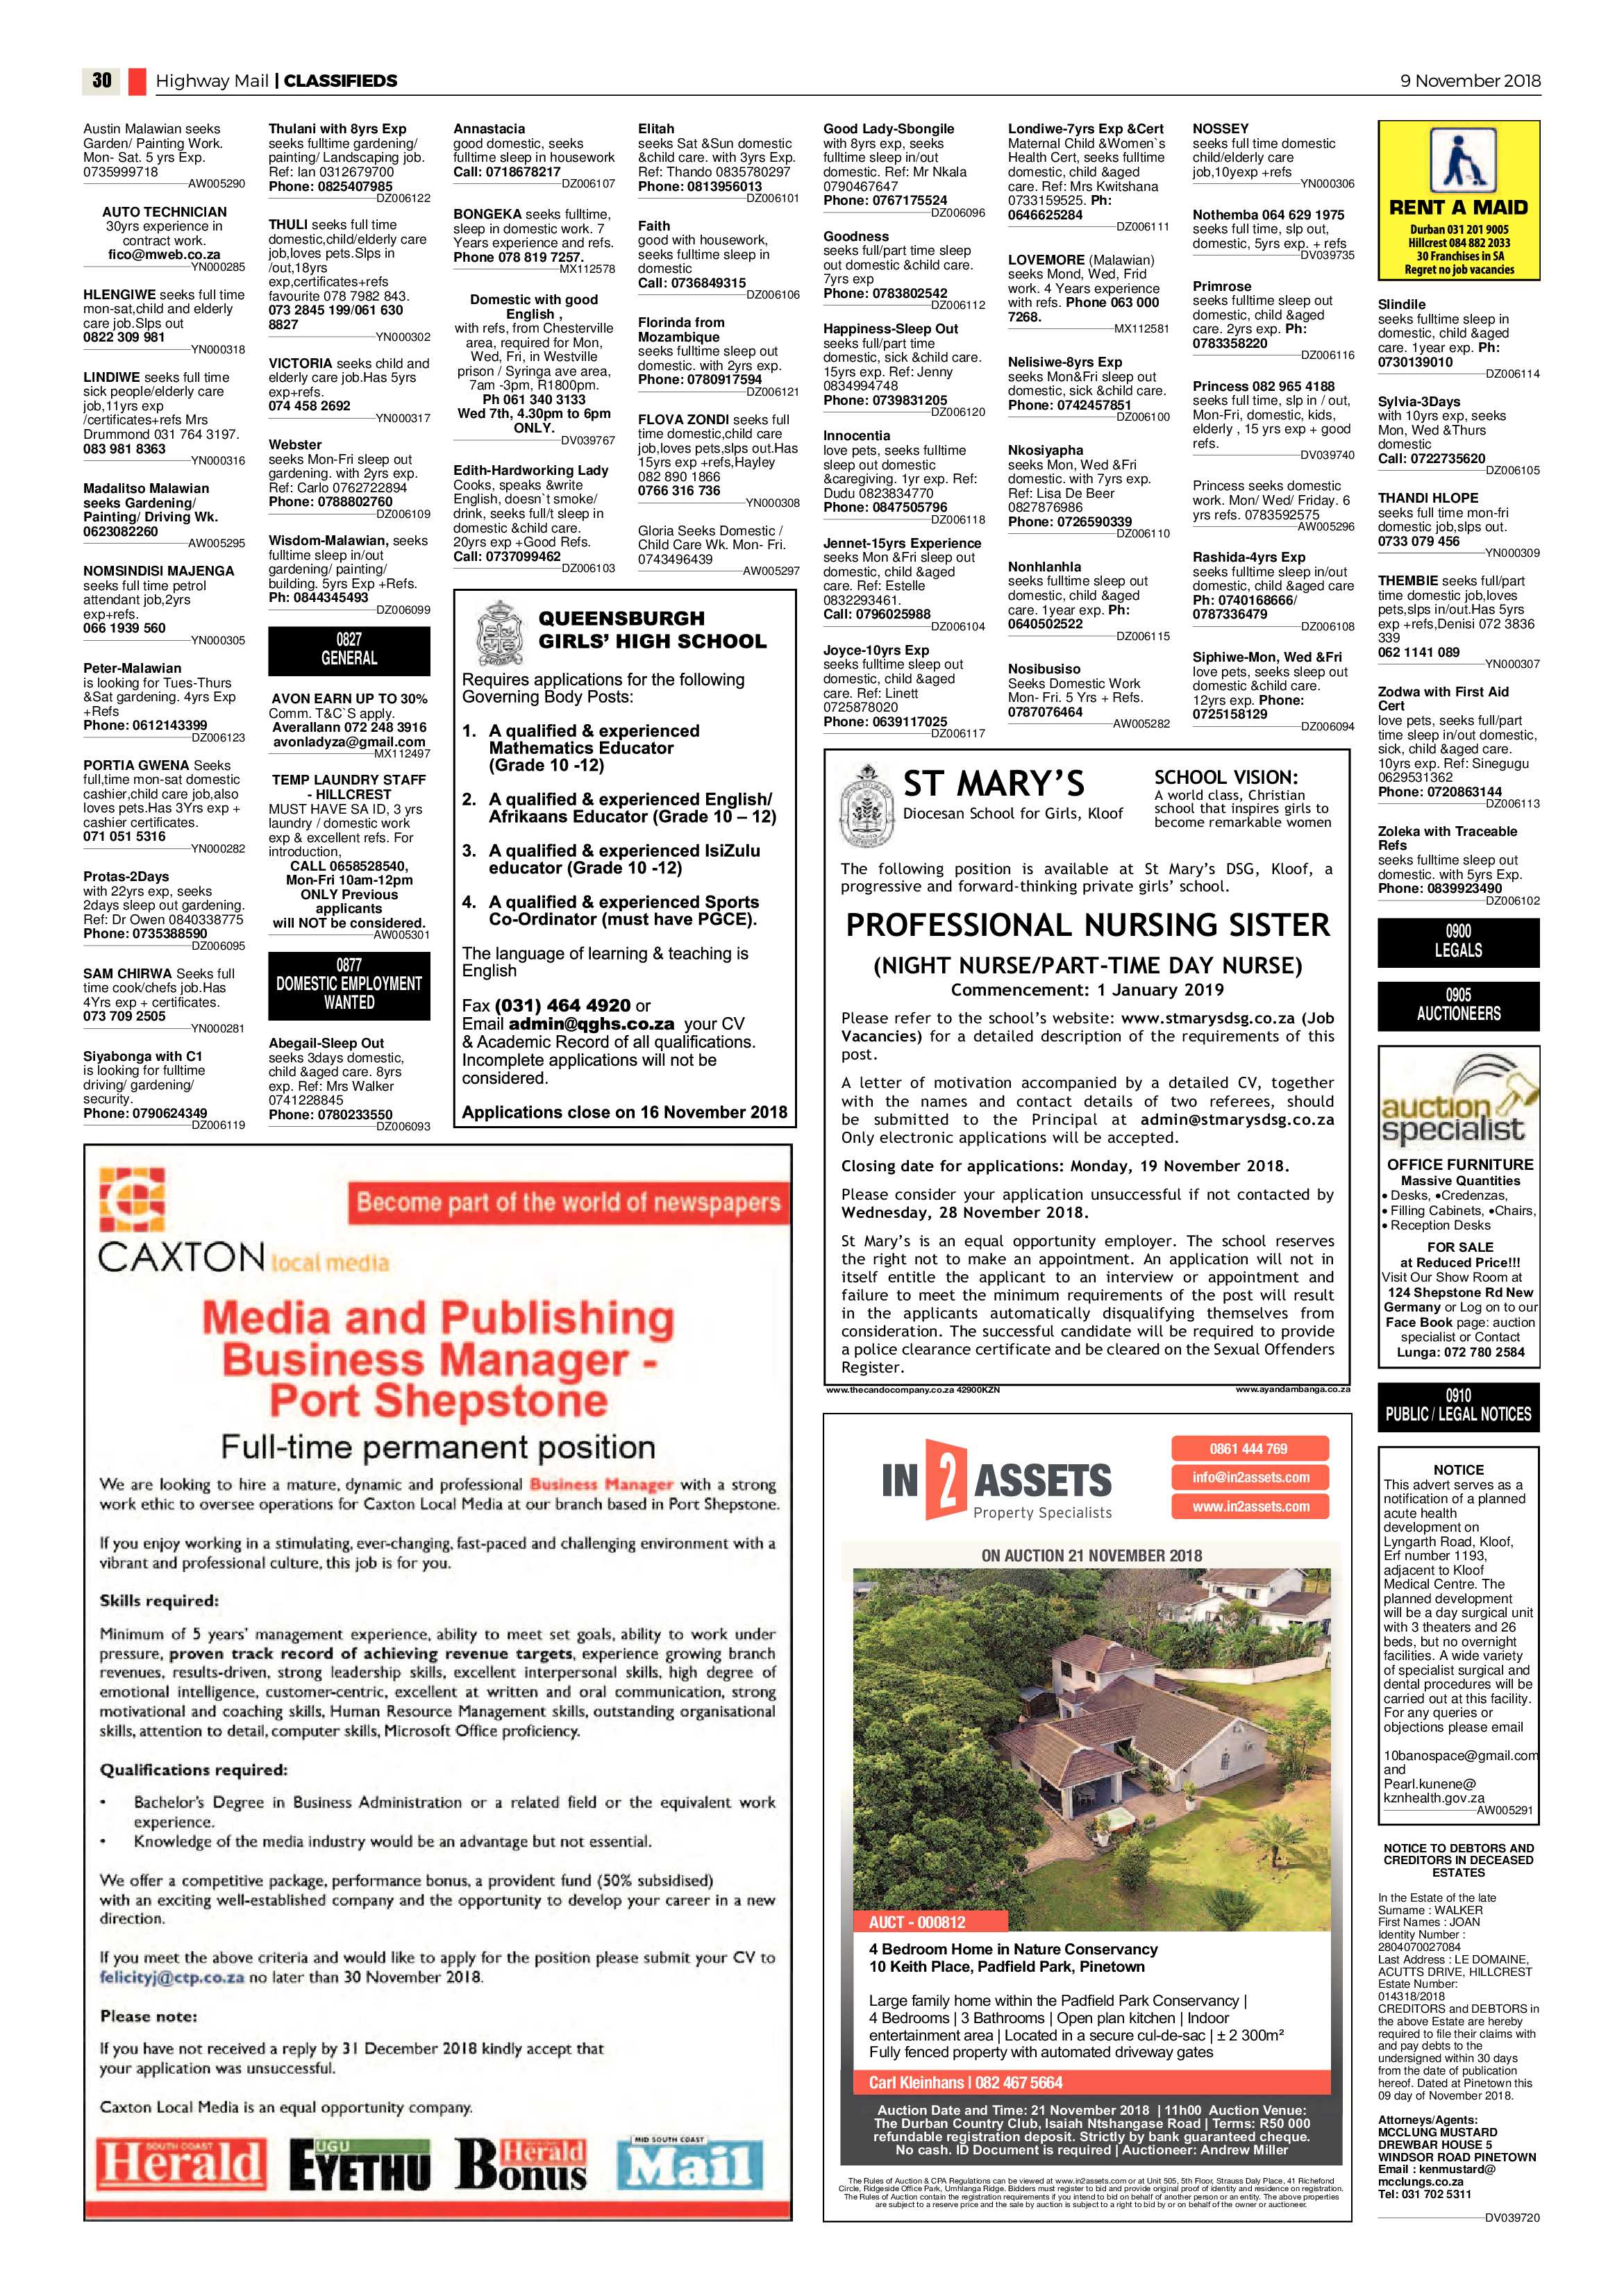 highway-mail-9-november-2018-epapers-page-30